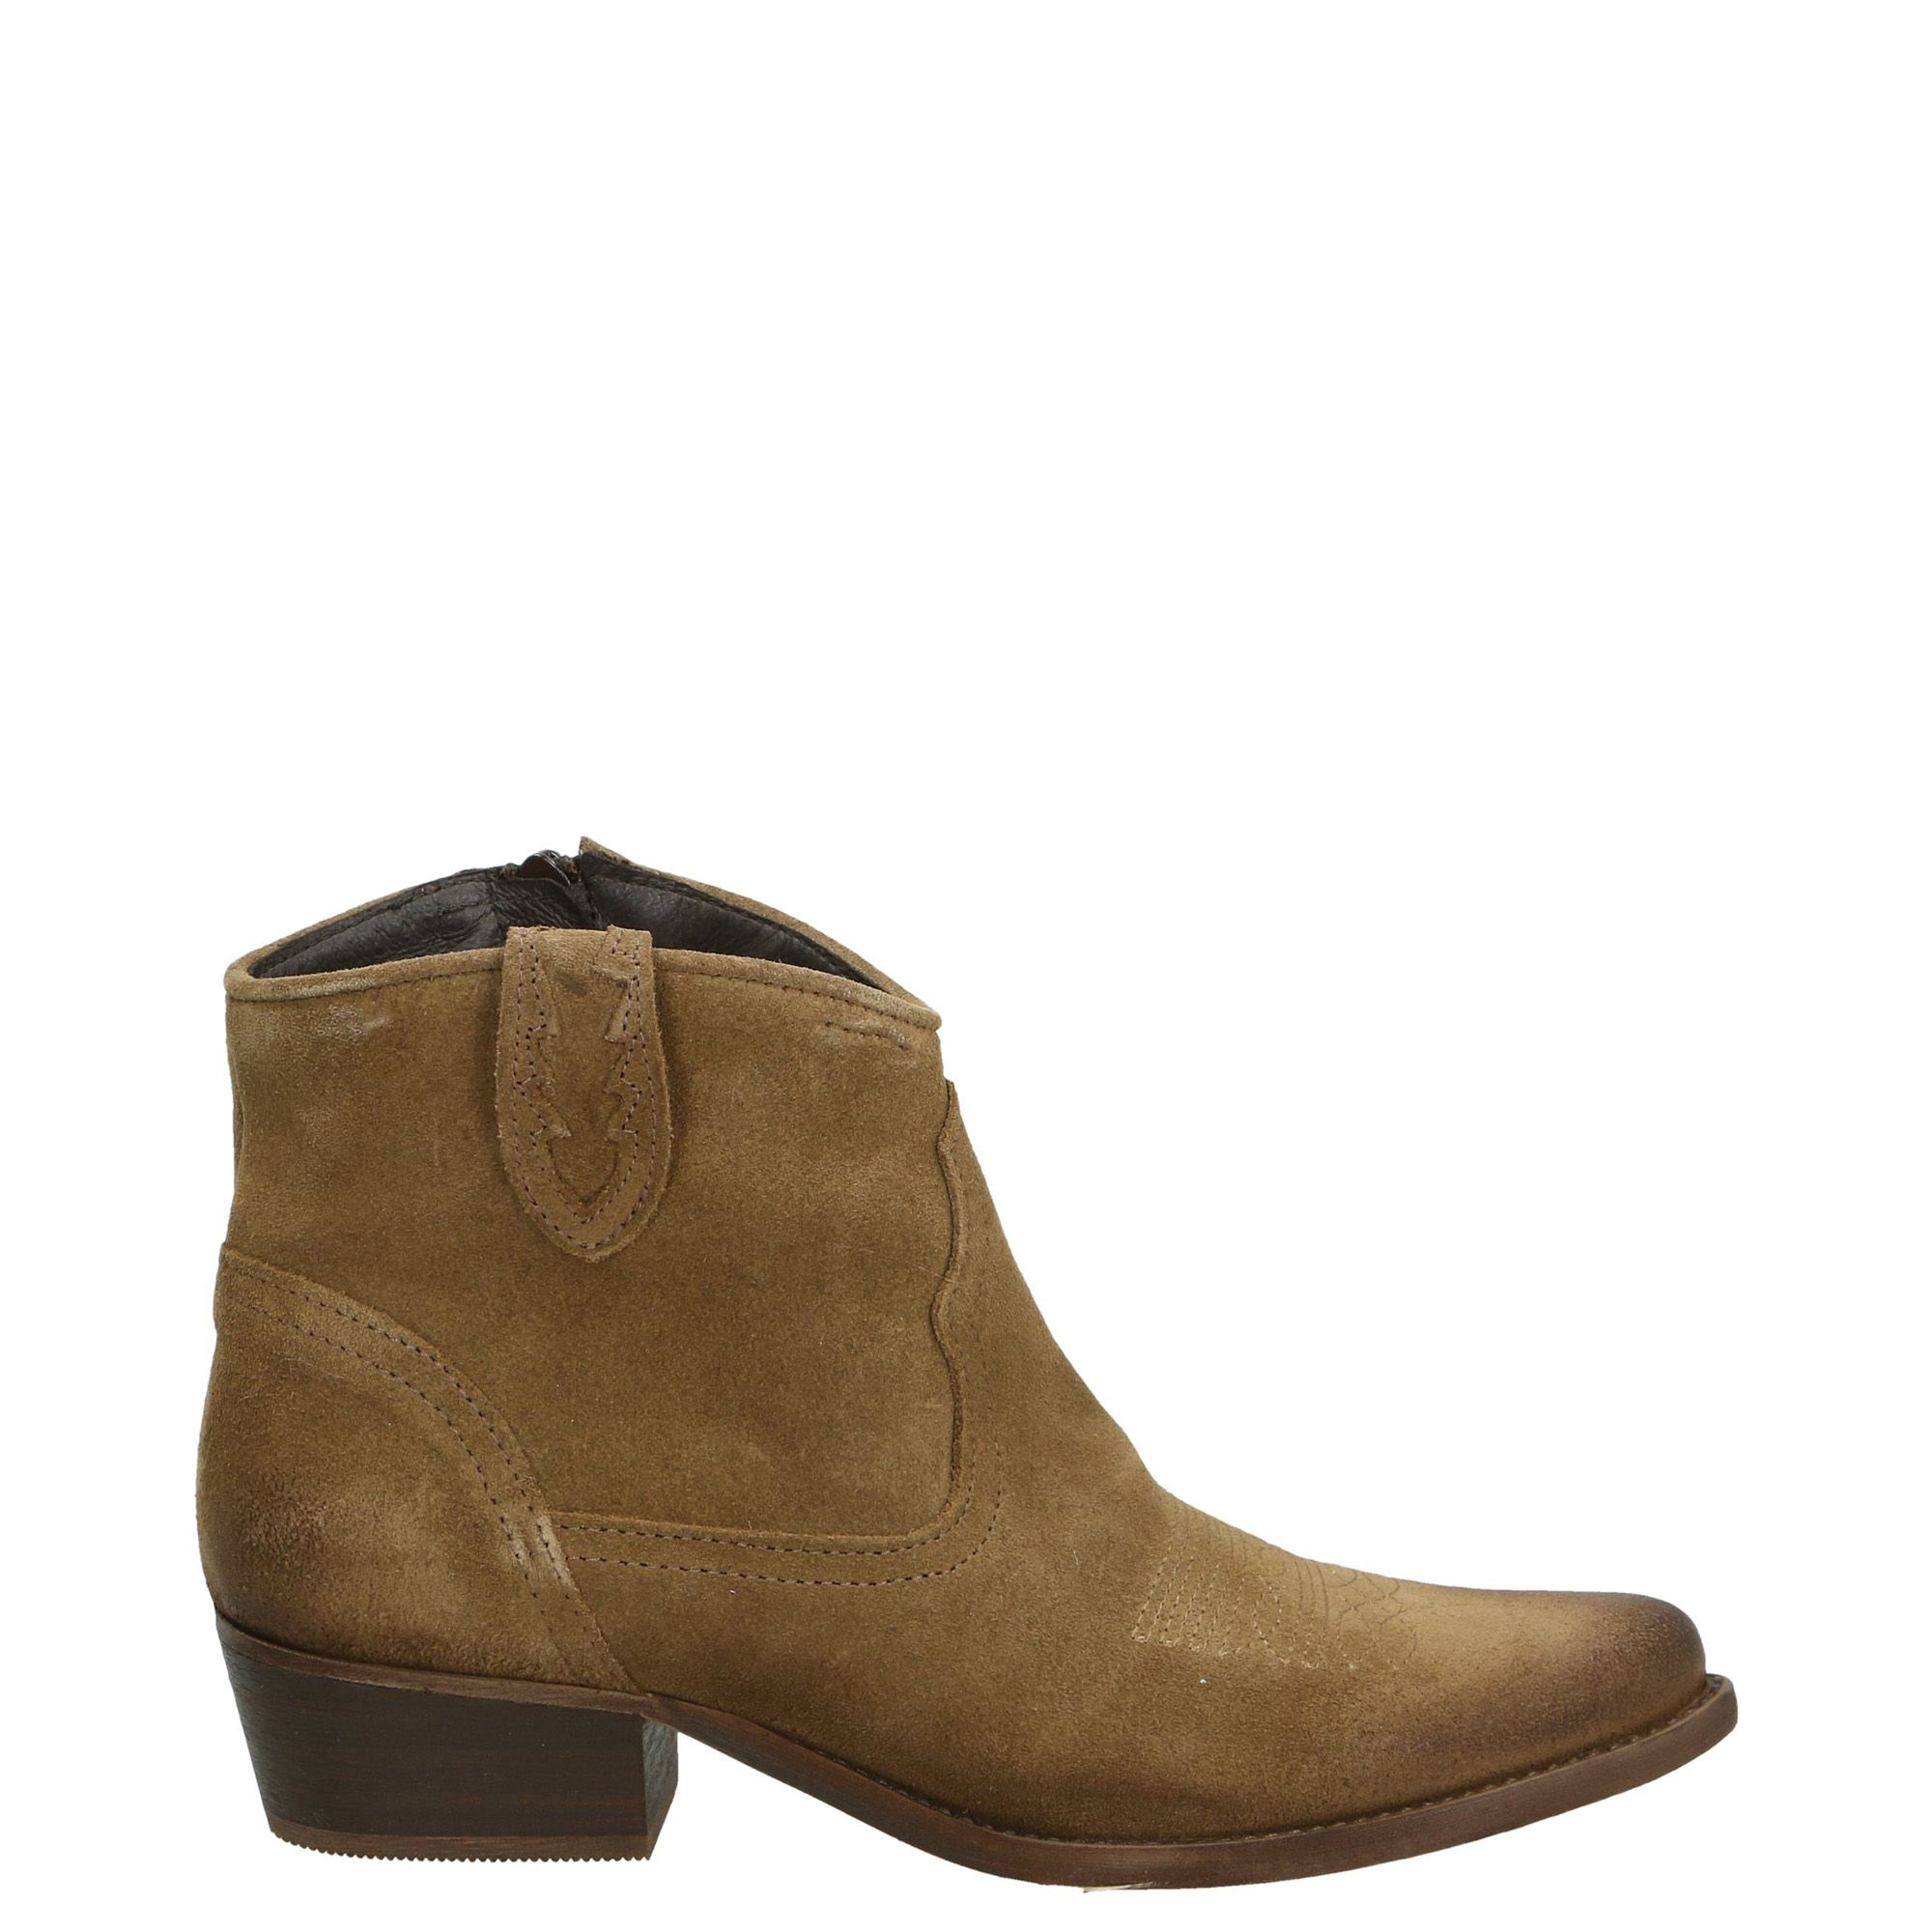 Pin By Gosik P On Do Kupienia Boots Shoes Ankle Boot